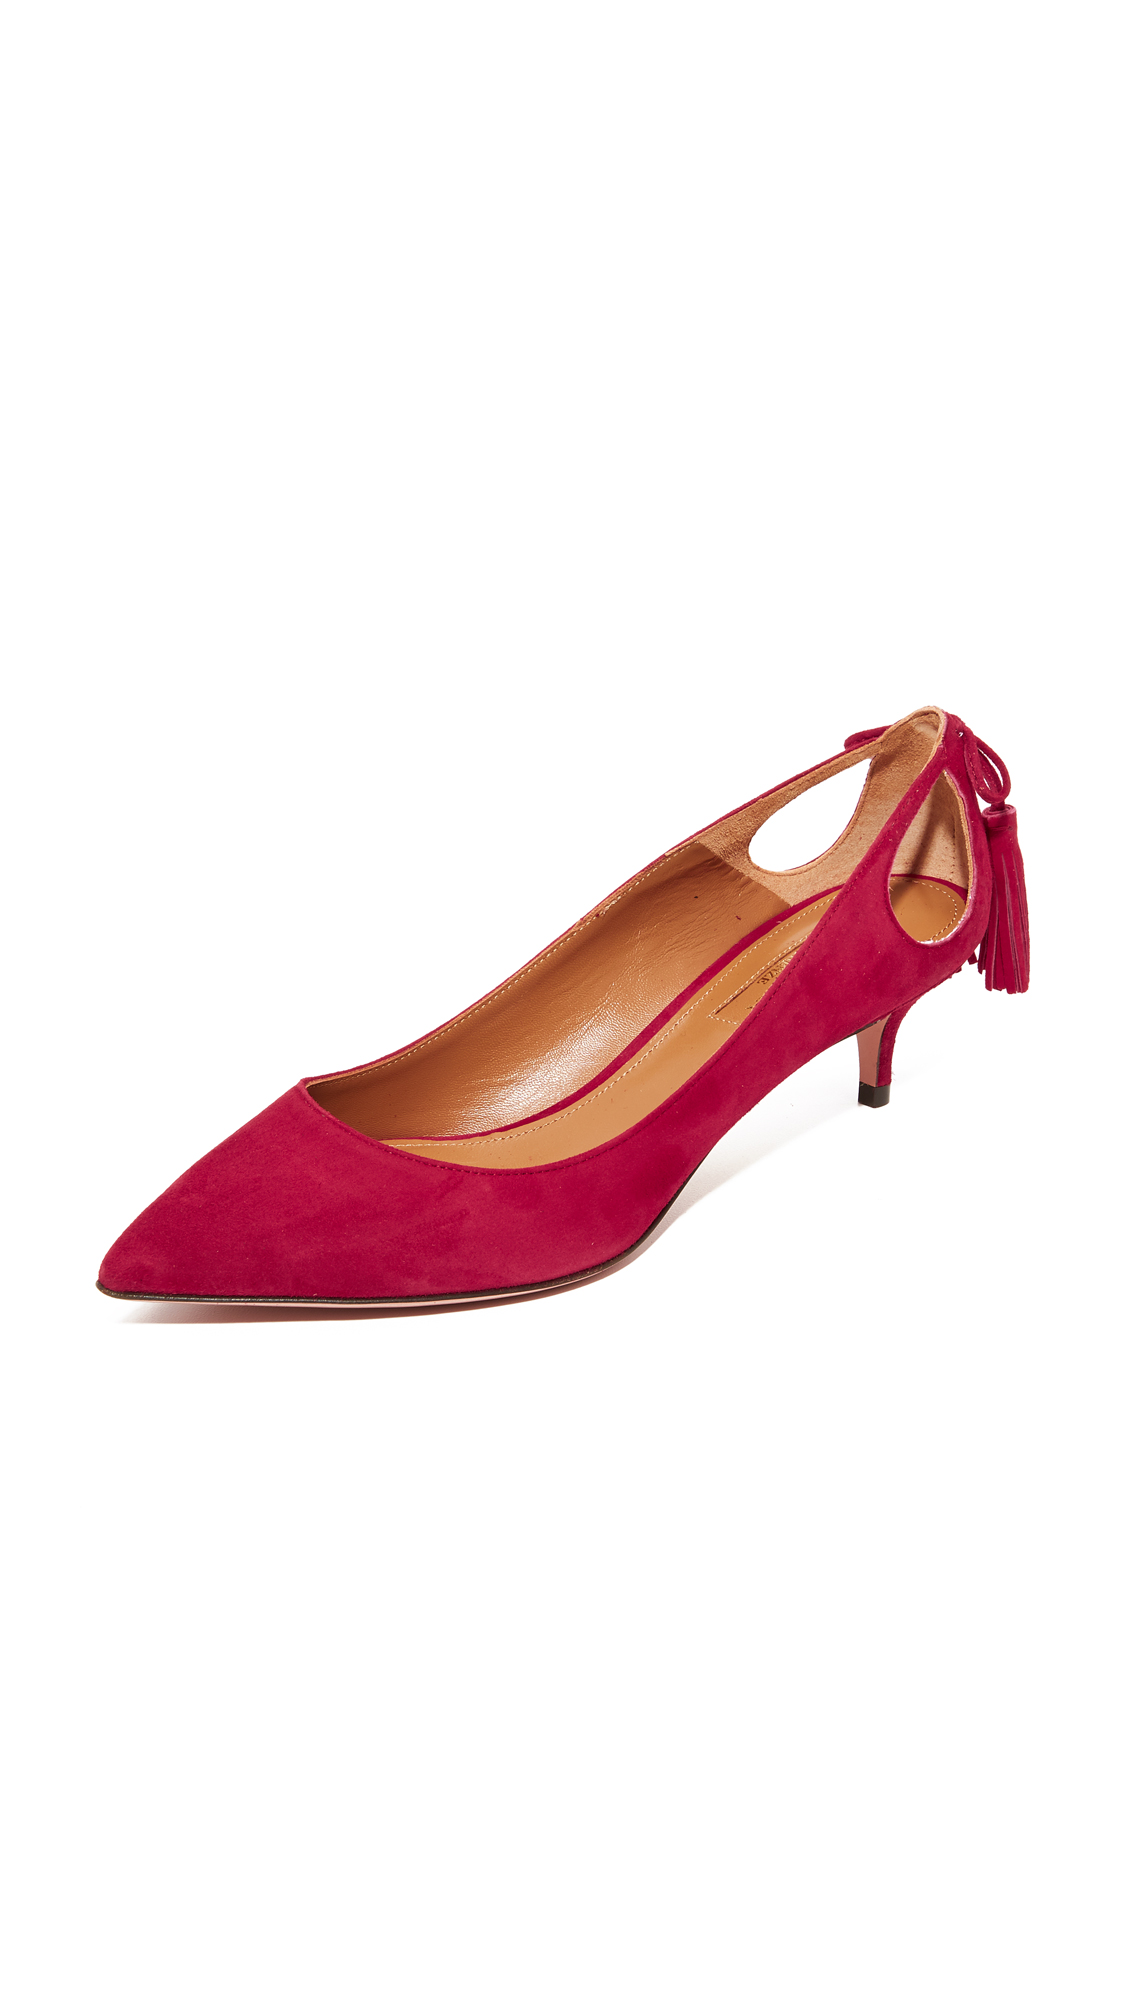 Aquazzura Forever Marilyn 45 Pumps - Spice Red